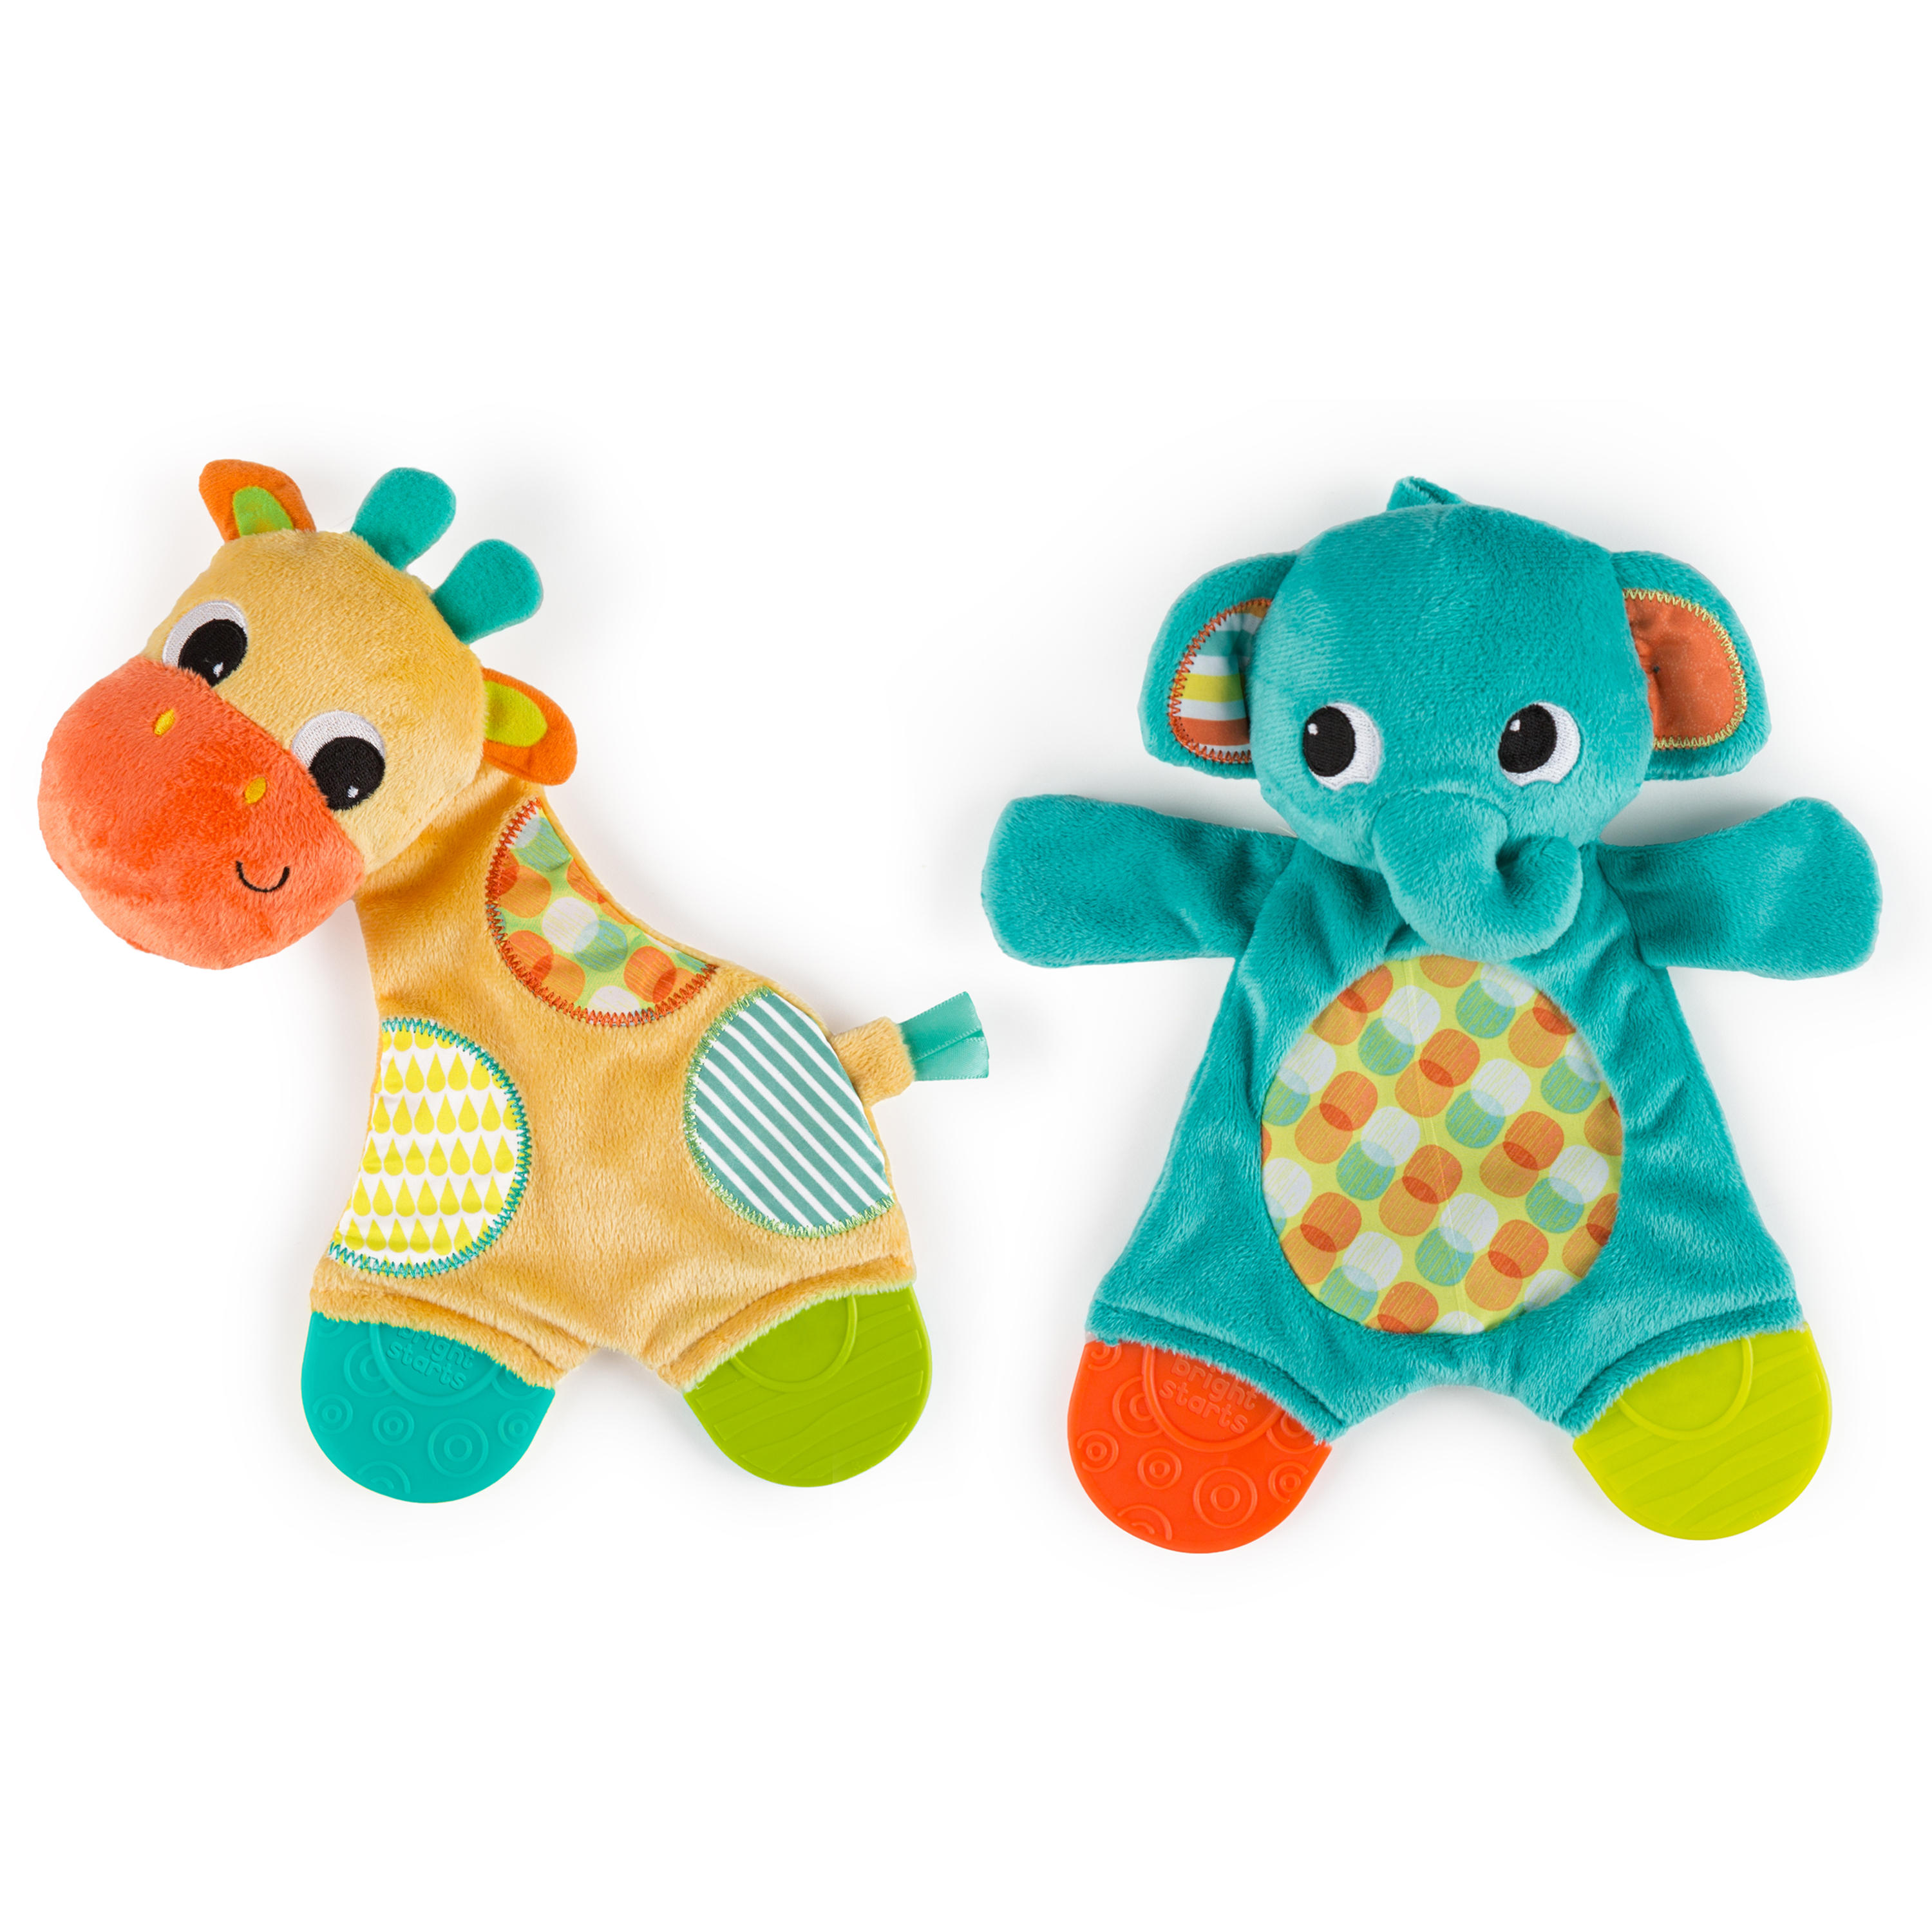 Bright Starts Snuggle & Teethe Toy by Bright Starts